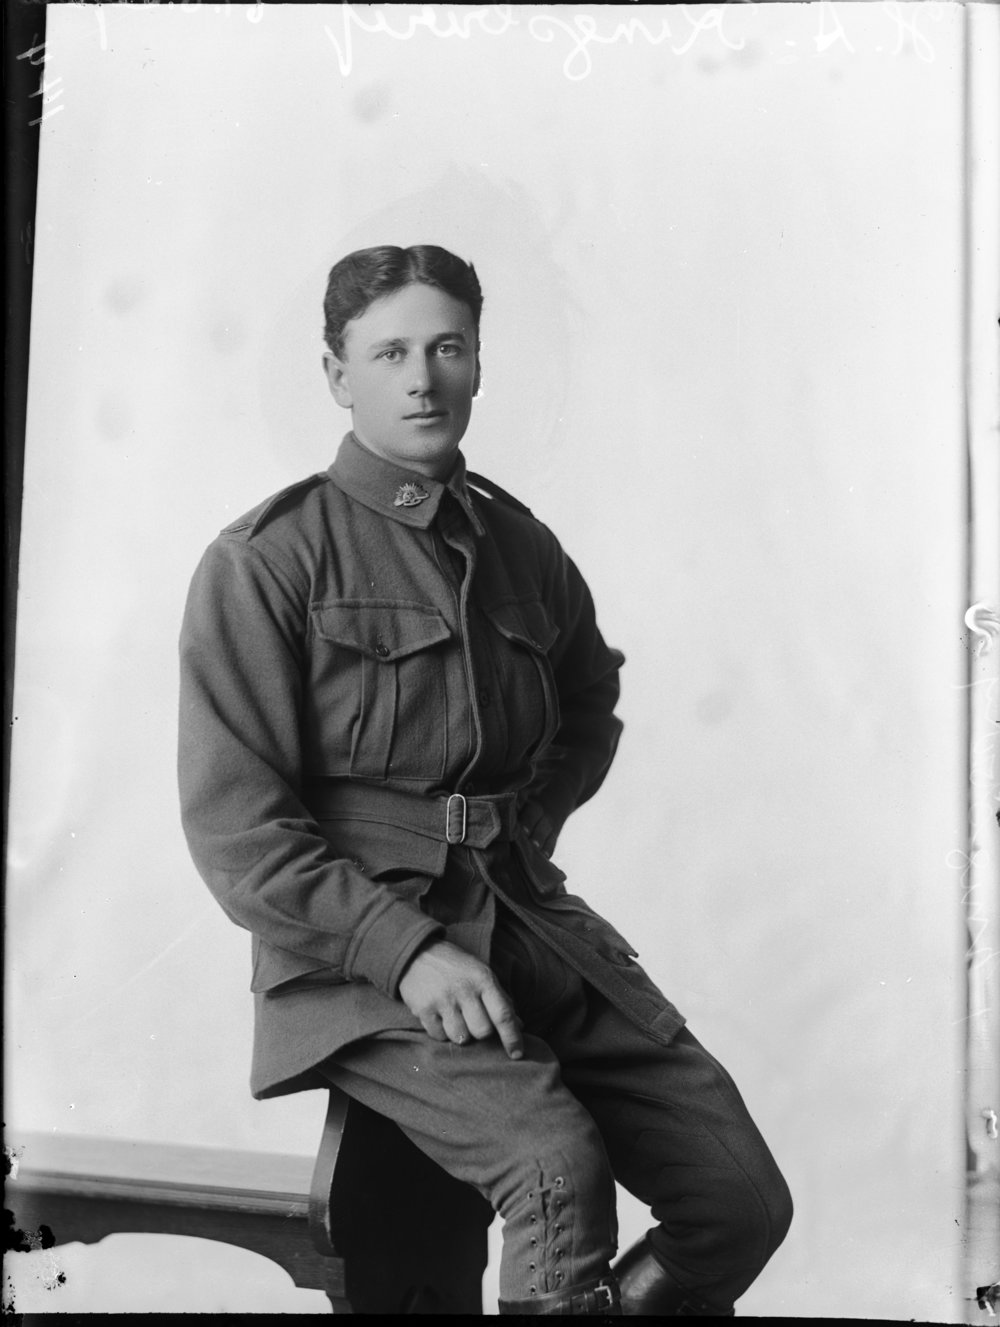 Photographed at the Dease Studio, 117 Barrack Street Perth WA Image courtesy of the State Library of Western Australia: 153044PD